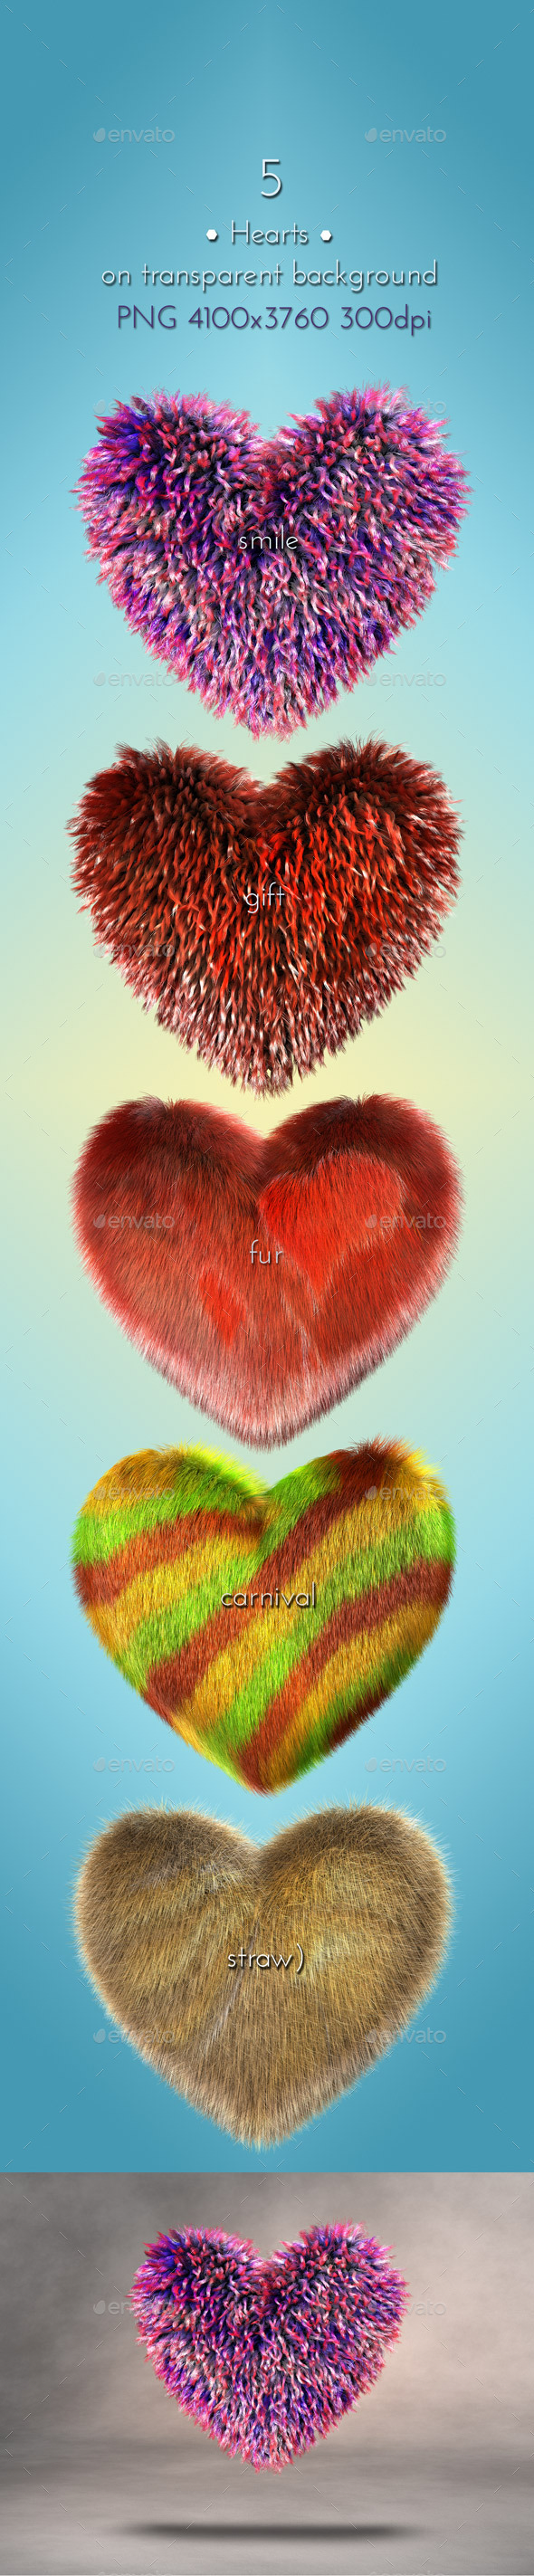 Gift Hearts 3D - Objects 3D Renders